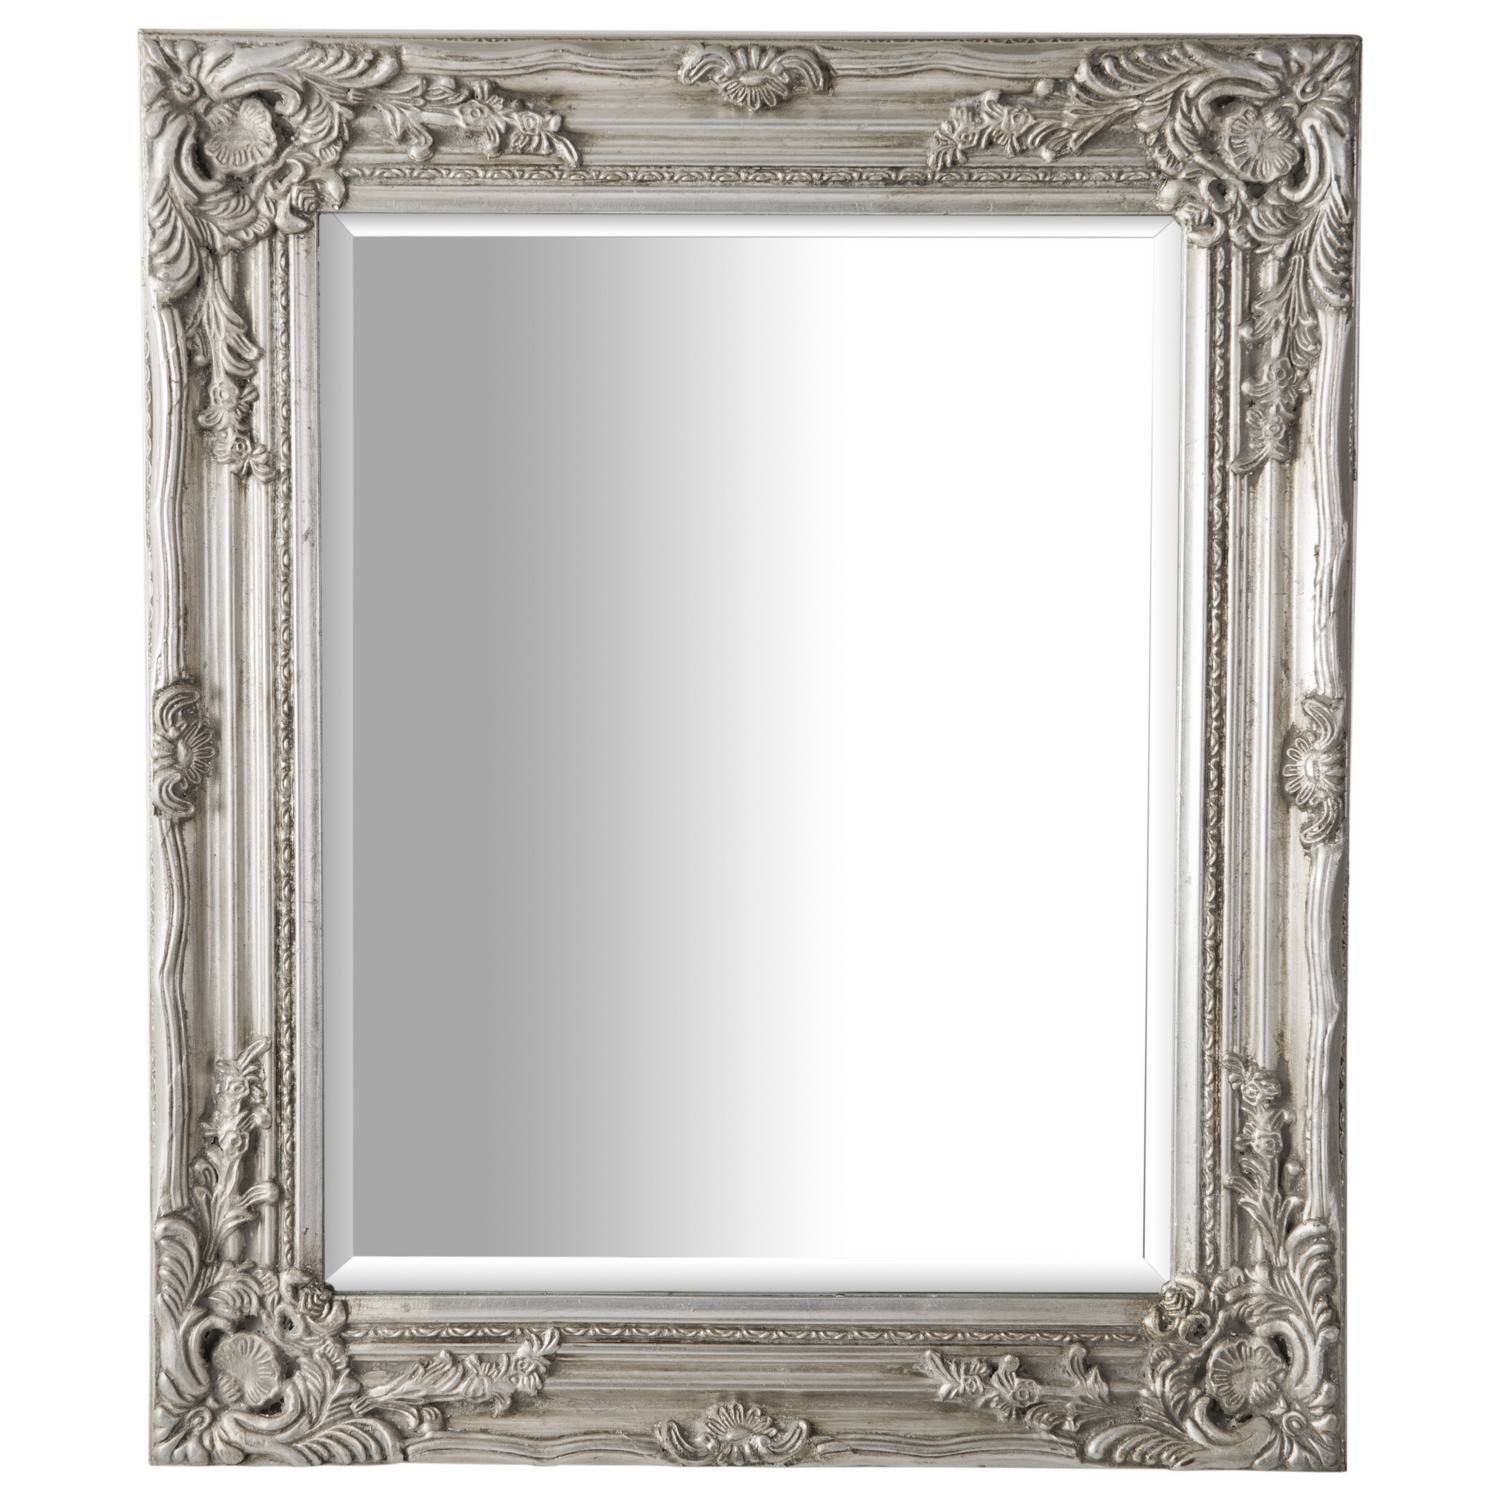 Antique Ornate Mirror Silver intended for Ornate Silver Mirrors (Image 3 of 25)